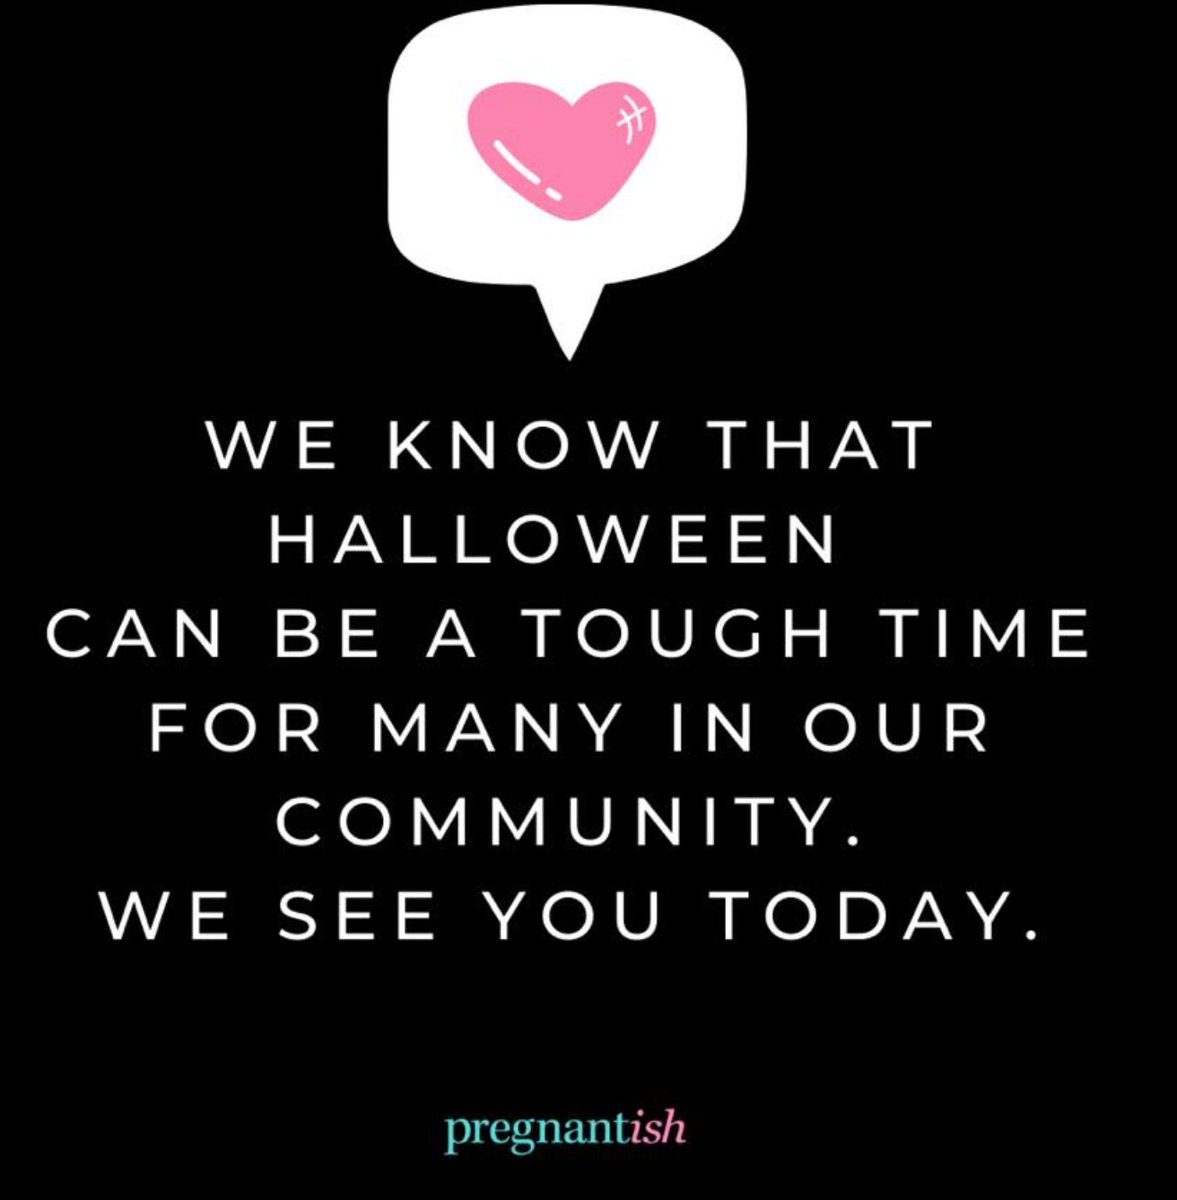 A simple note on this Saturday. Halloween can be a painful reminder of what/who we don't have in our lives. We see and honor you today 💕🧡❤️ #infertility #miscarriage https://t.co/7tqf7gjxRO